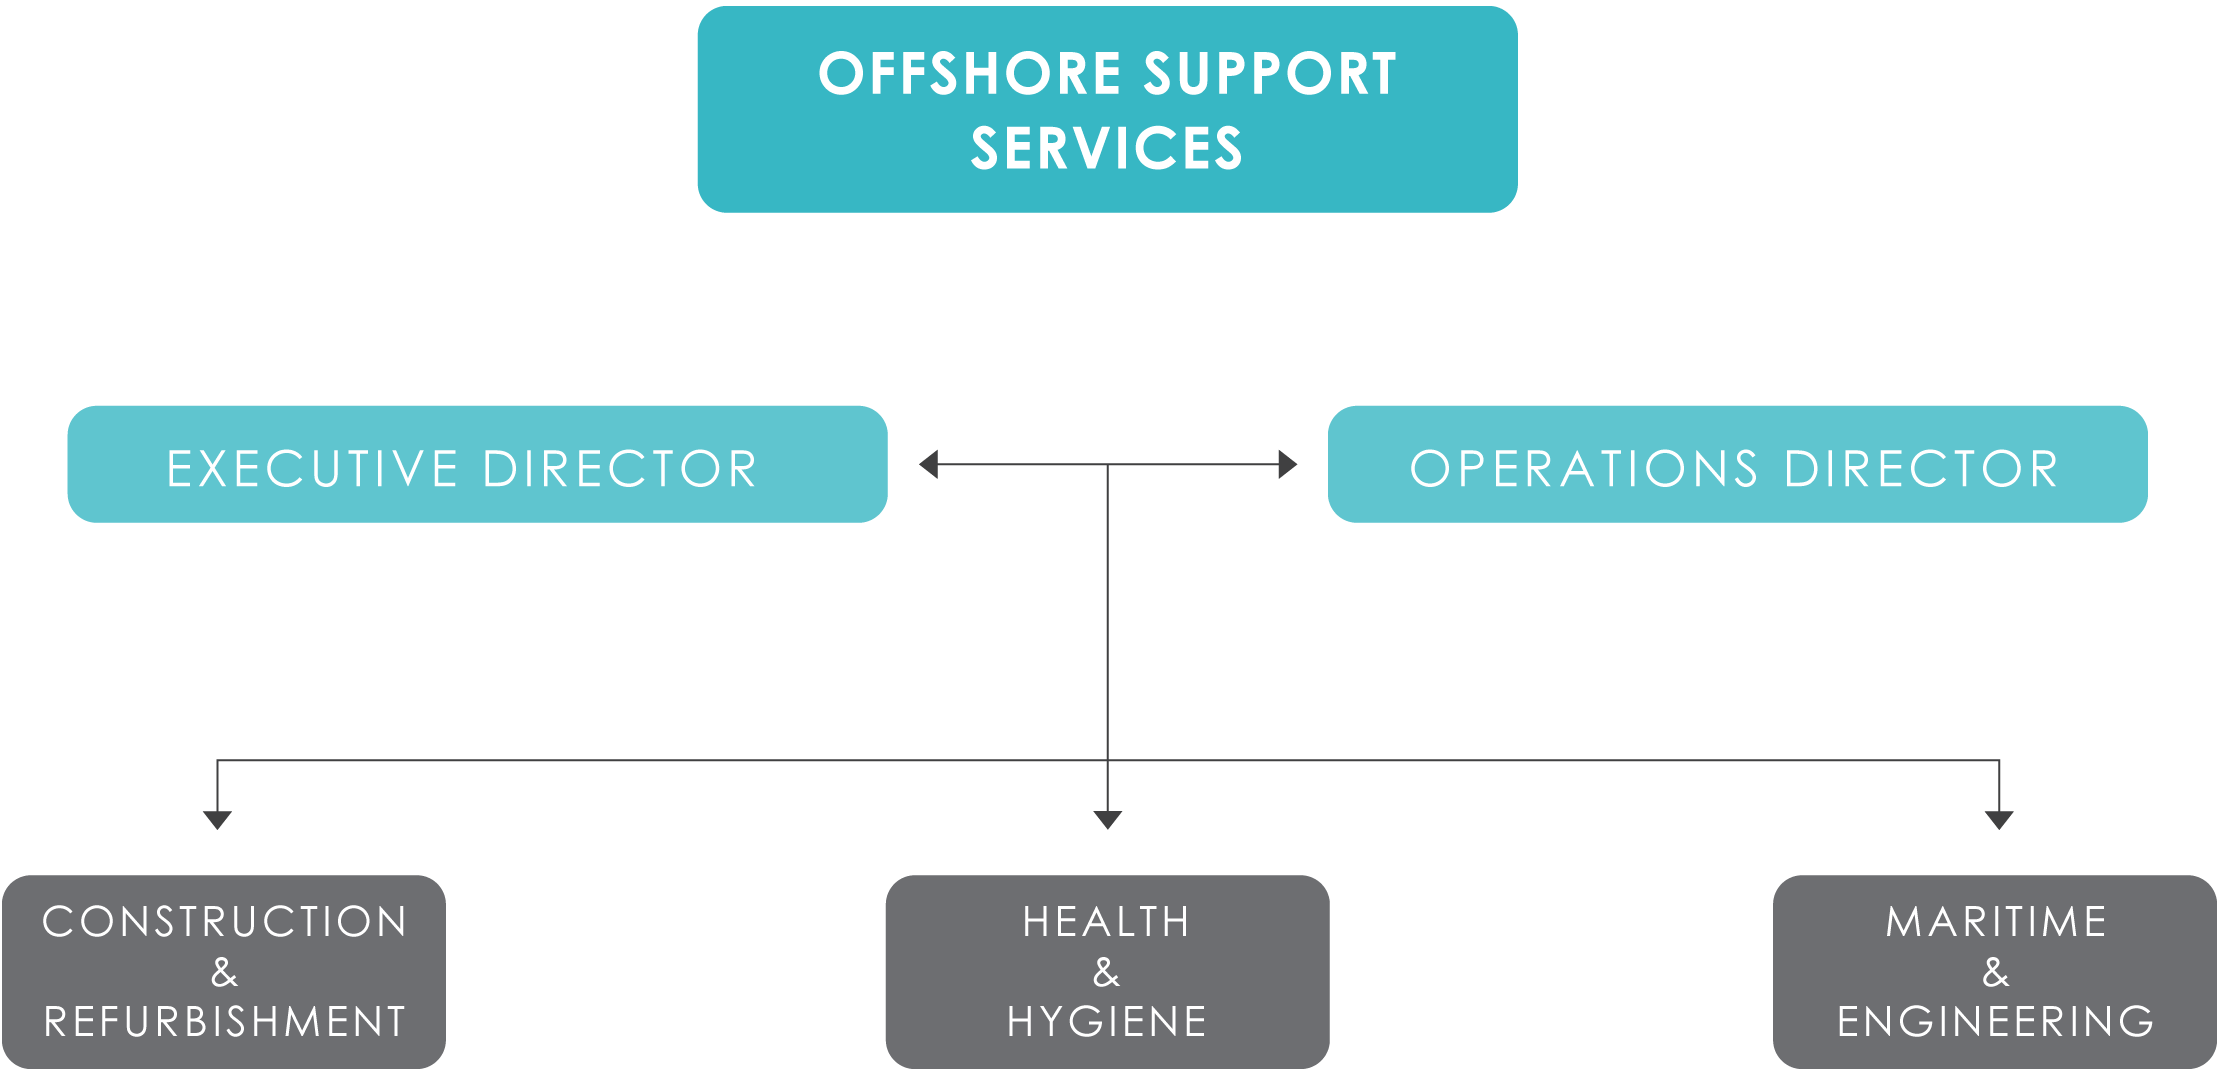 Offshore support services company structure operating organisation